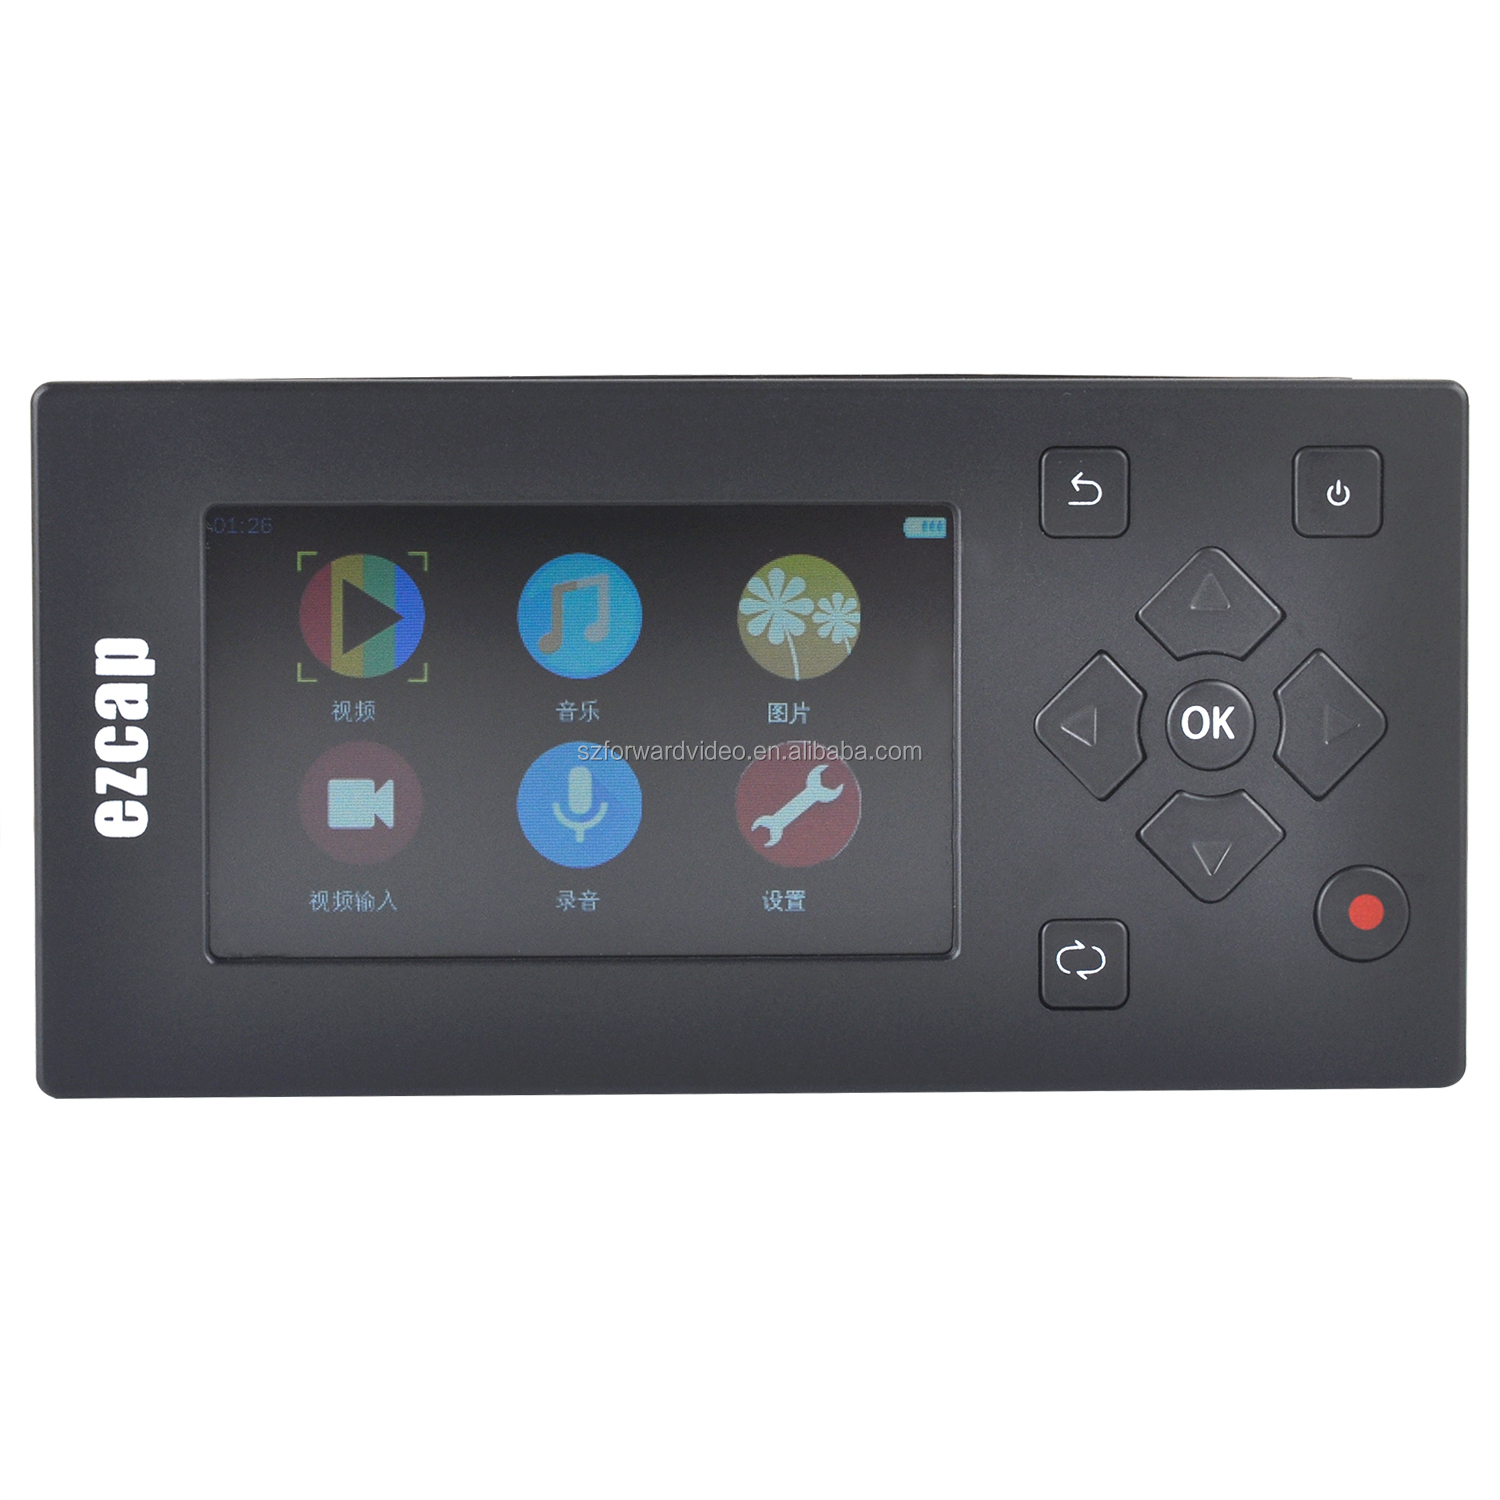 Video to Digital Converter Standalone Media AV Recorder and Player with Mic portable video player ezcap271